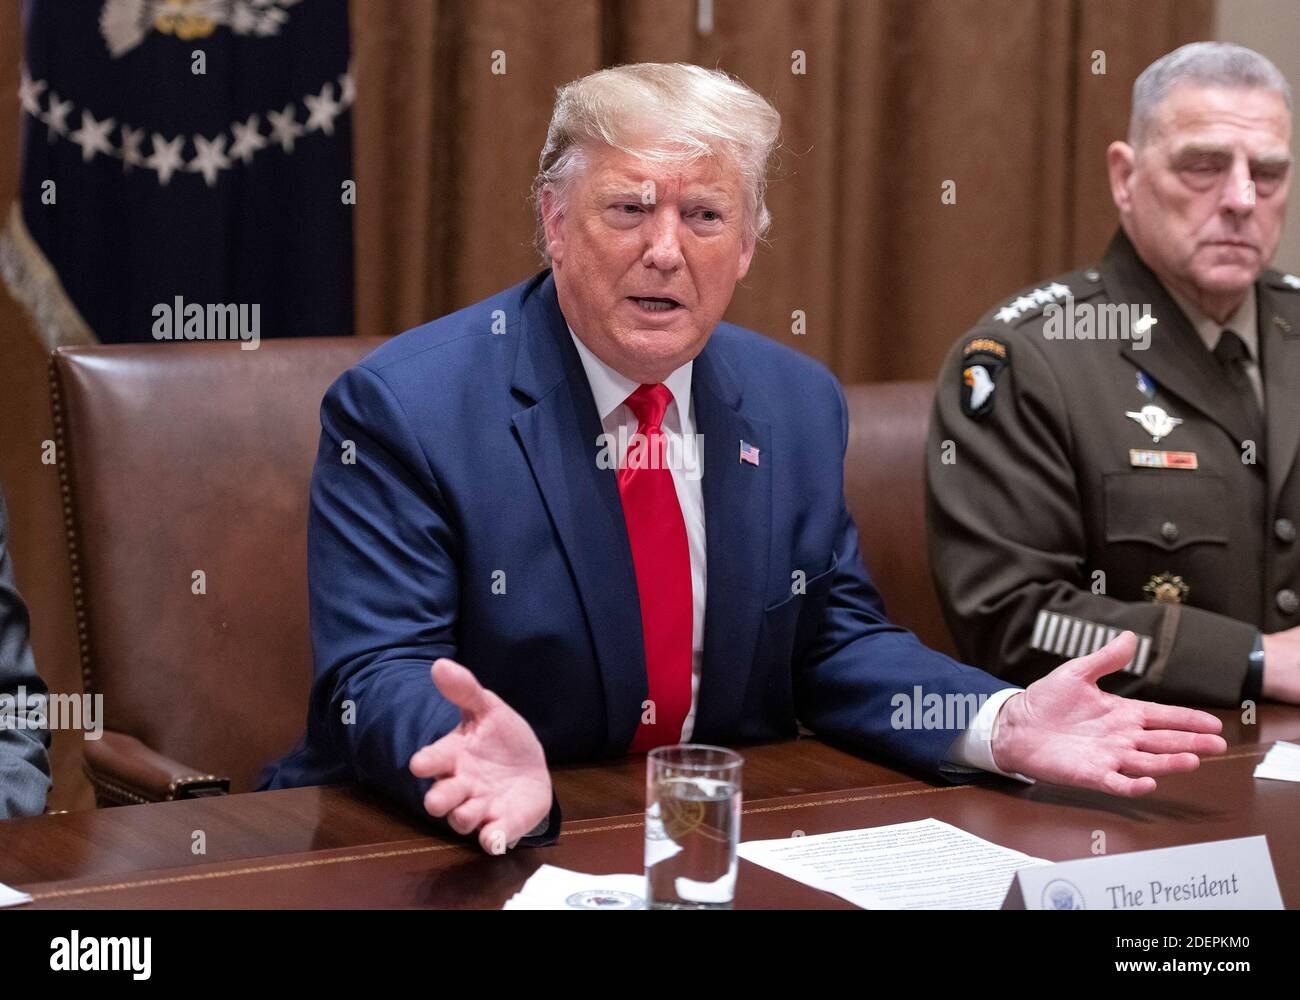 United States President Donald J. Trump answers a reporter's question as he participates in a briefing with senior military leaders in the Cabinet Room of the White House in Washington, DC, USA on Monday, October 7, 2019. Photo by Ron Sachs/CNP/ABACAPRESS.COM Stock Photo